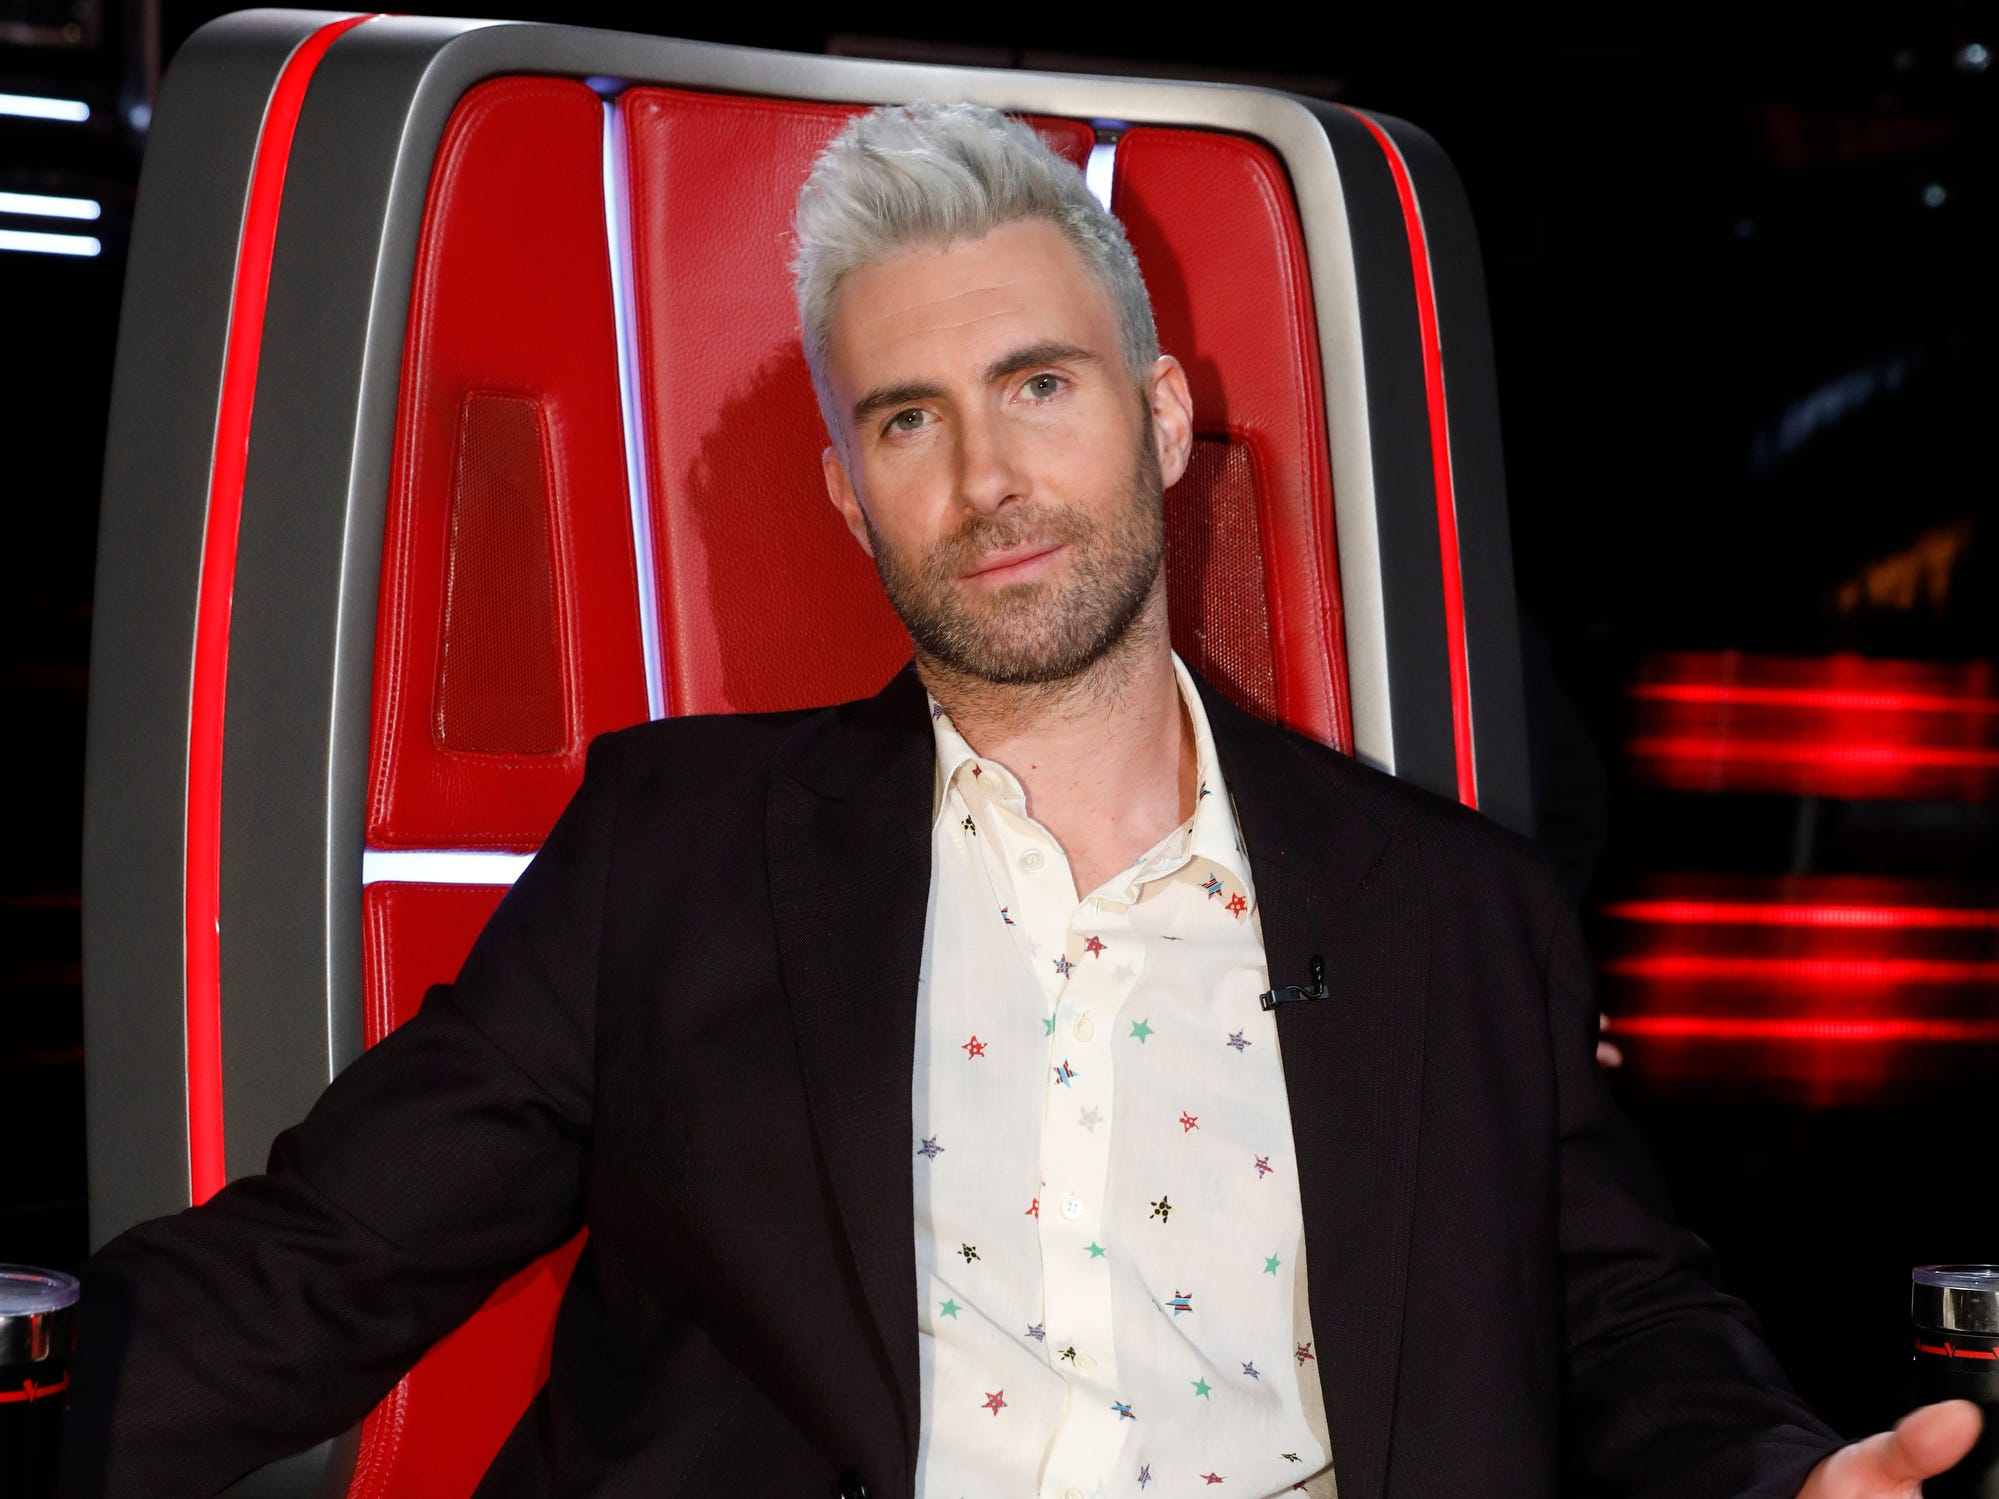 Adam Levine didn't have a contestant in the Season 15 finale but that didn't stop him from making statements, including with his holiday-themed pants.